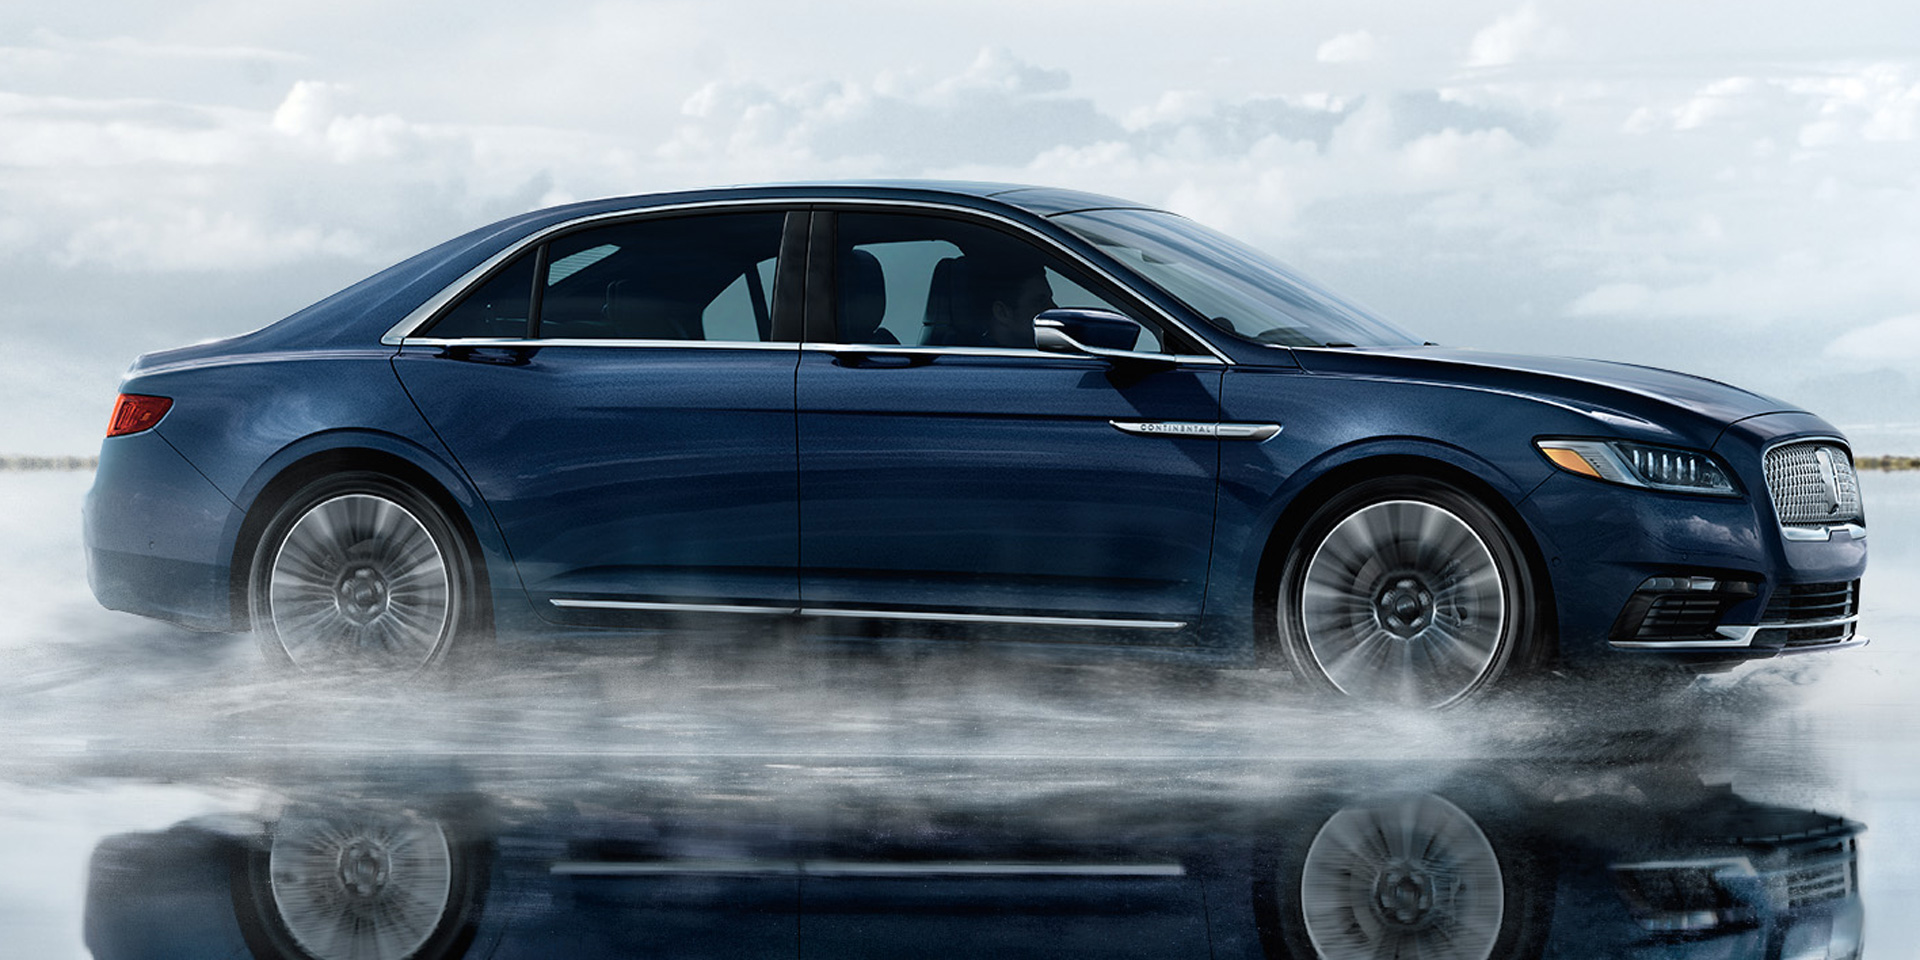 Future Cars 2018 Lincoln Continental As A Bmw 7 And: Vehicles On Display